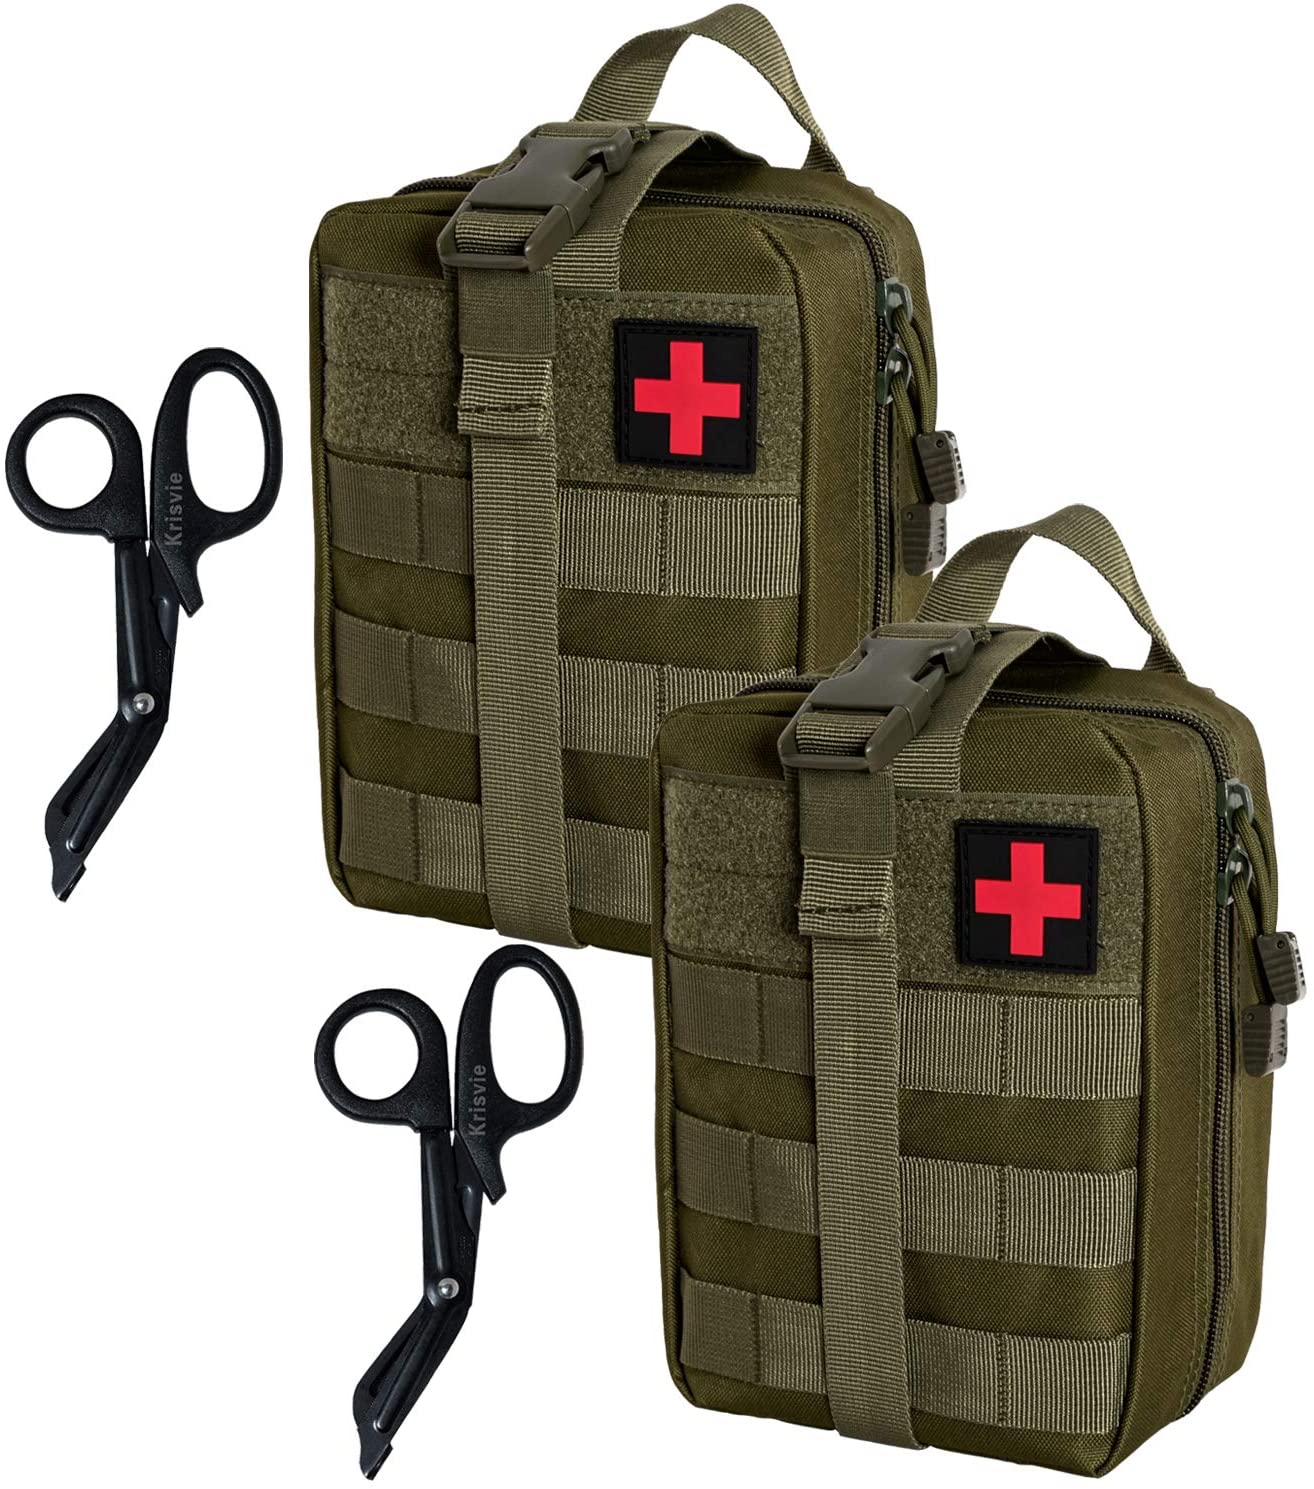 Krisvie 2Pack Rip-Away EMT Pouch Pouch Molle Pouch First Aid Kit Utility Pouch 1000D Nylon